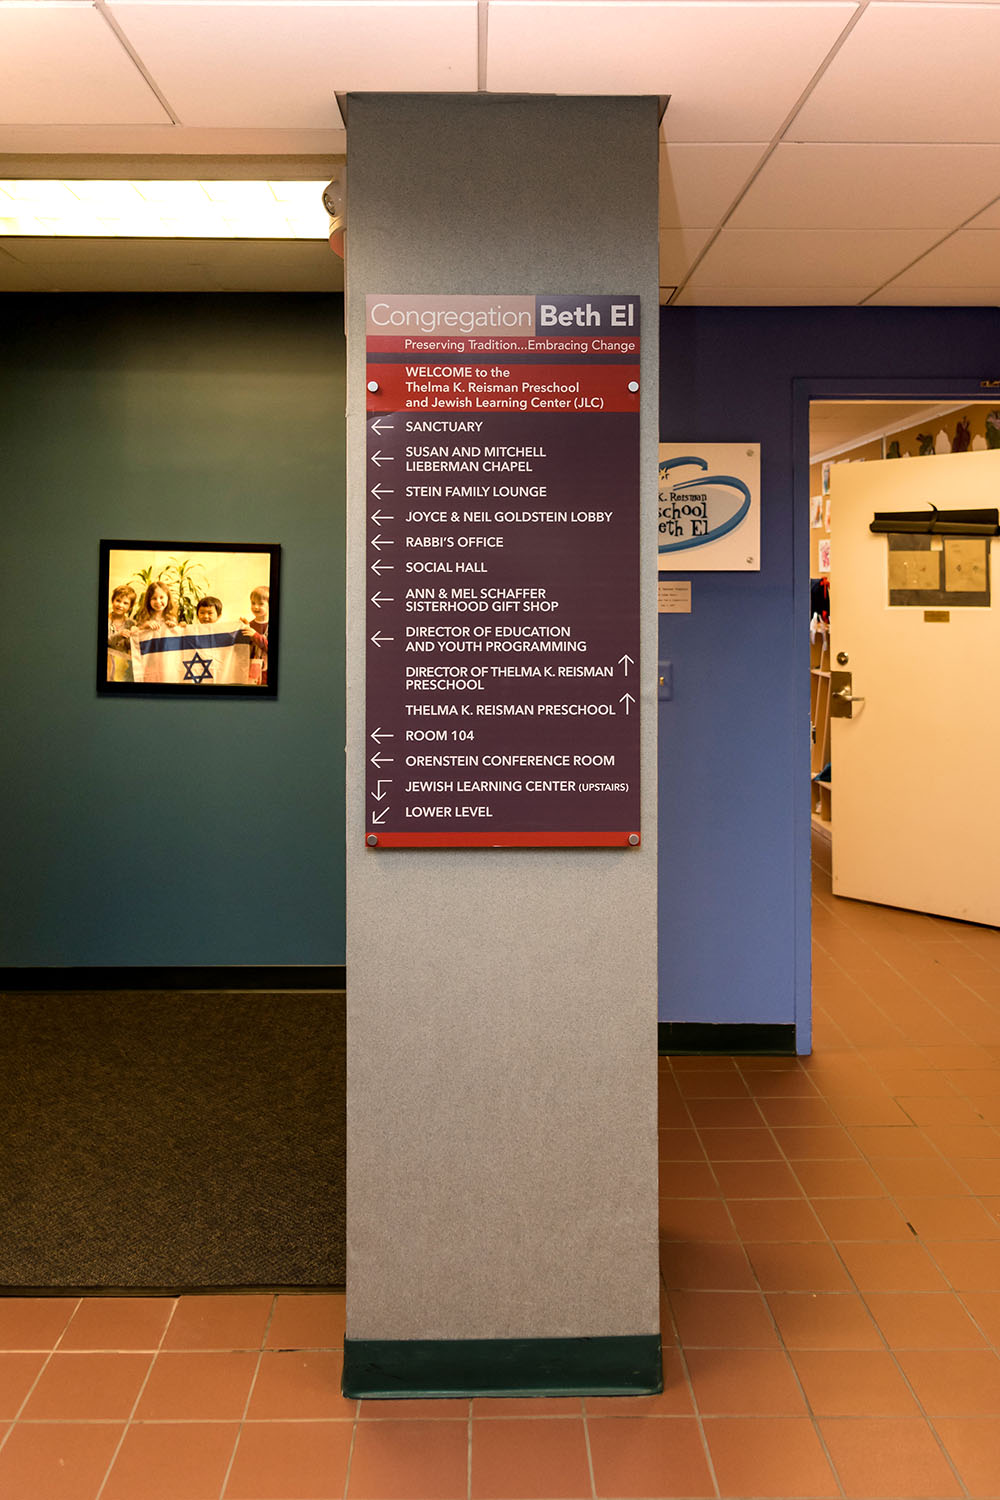 Way-finding signs in administrative area; preschool sign in background